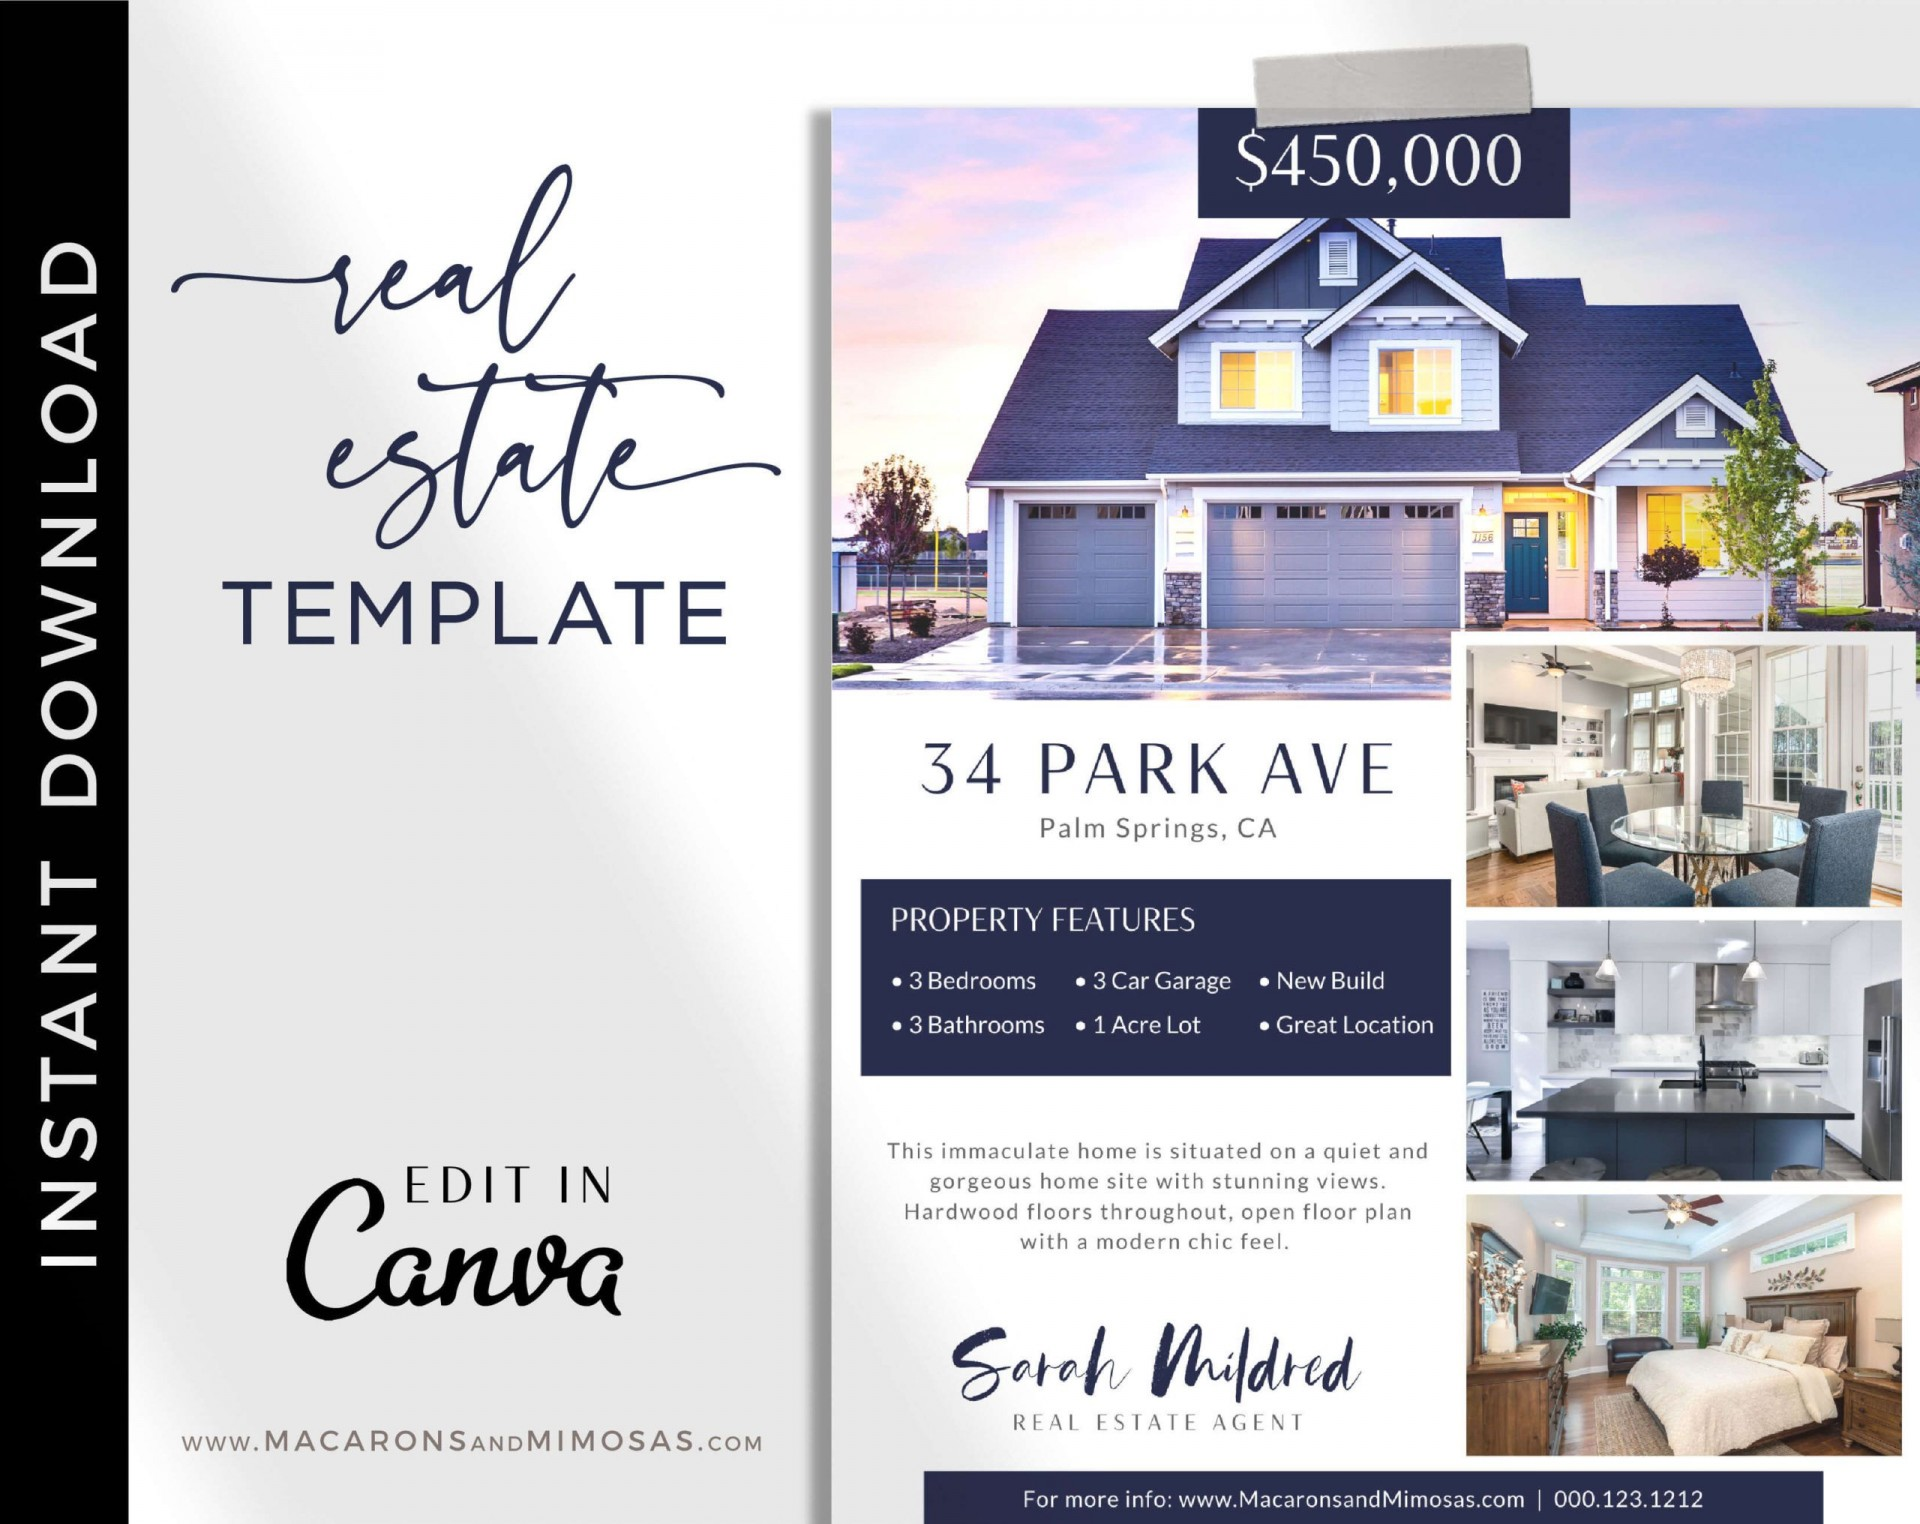 006 Formidable Open House Flyer Template High Definition  Templates Word Free School Microsoft1920